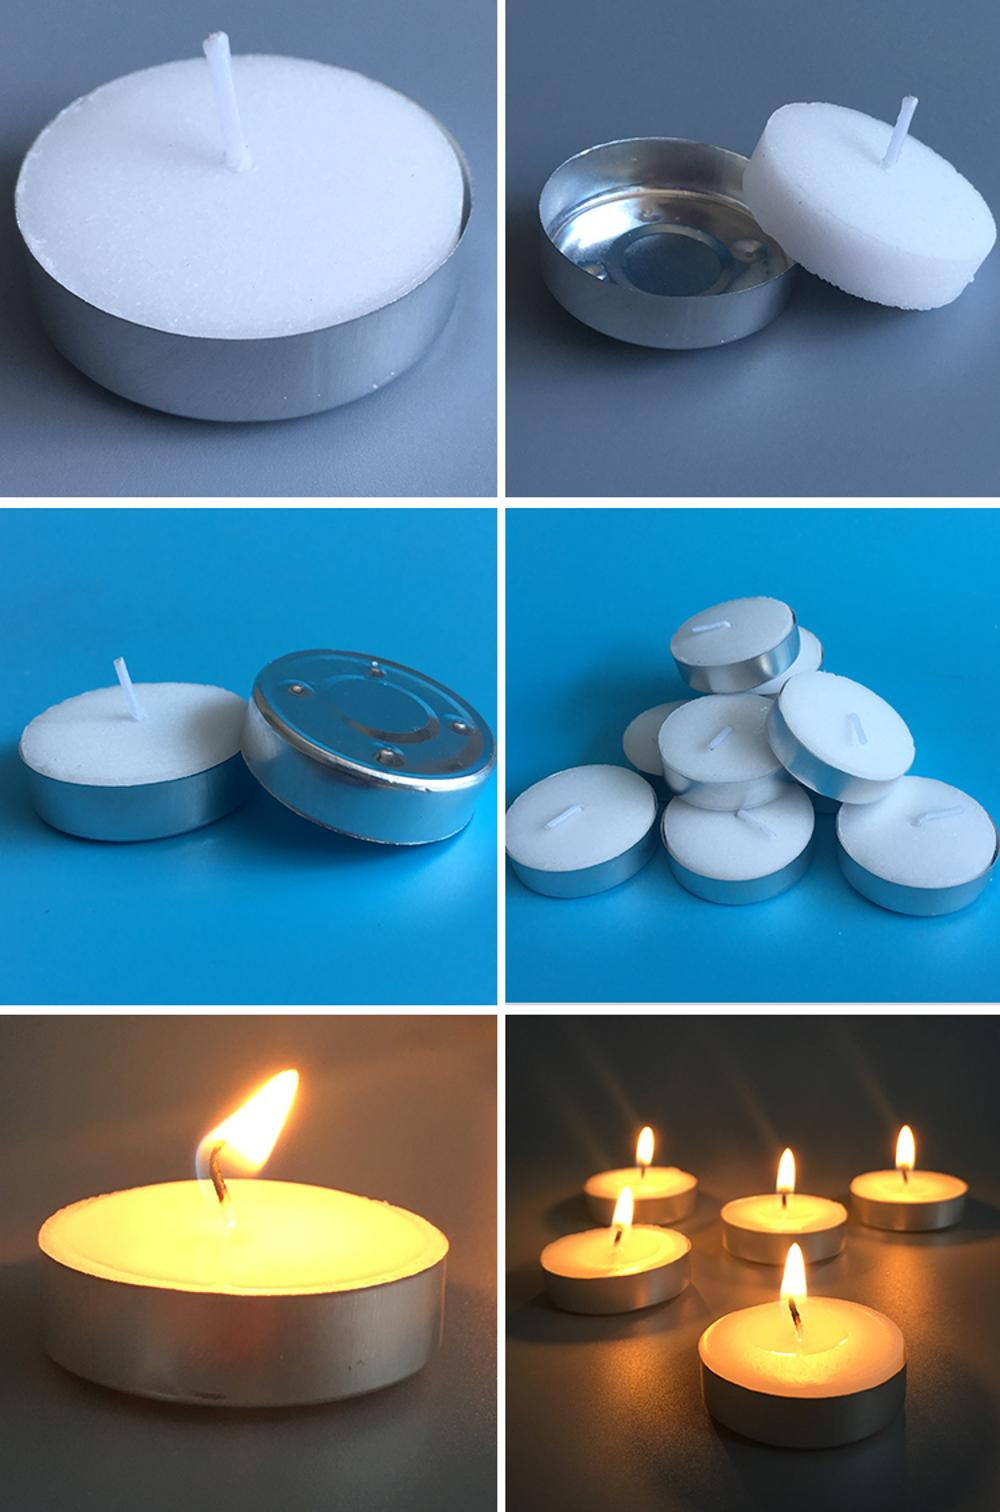 TEALIGHT CANDLE PICTURE